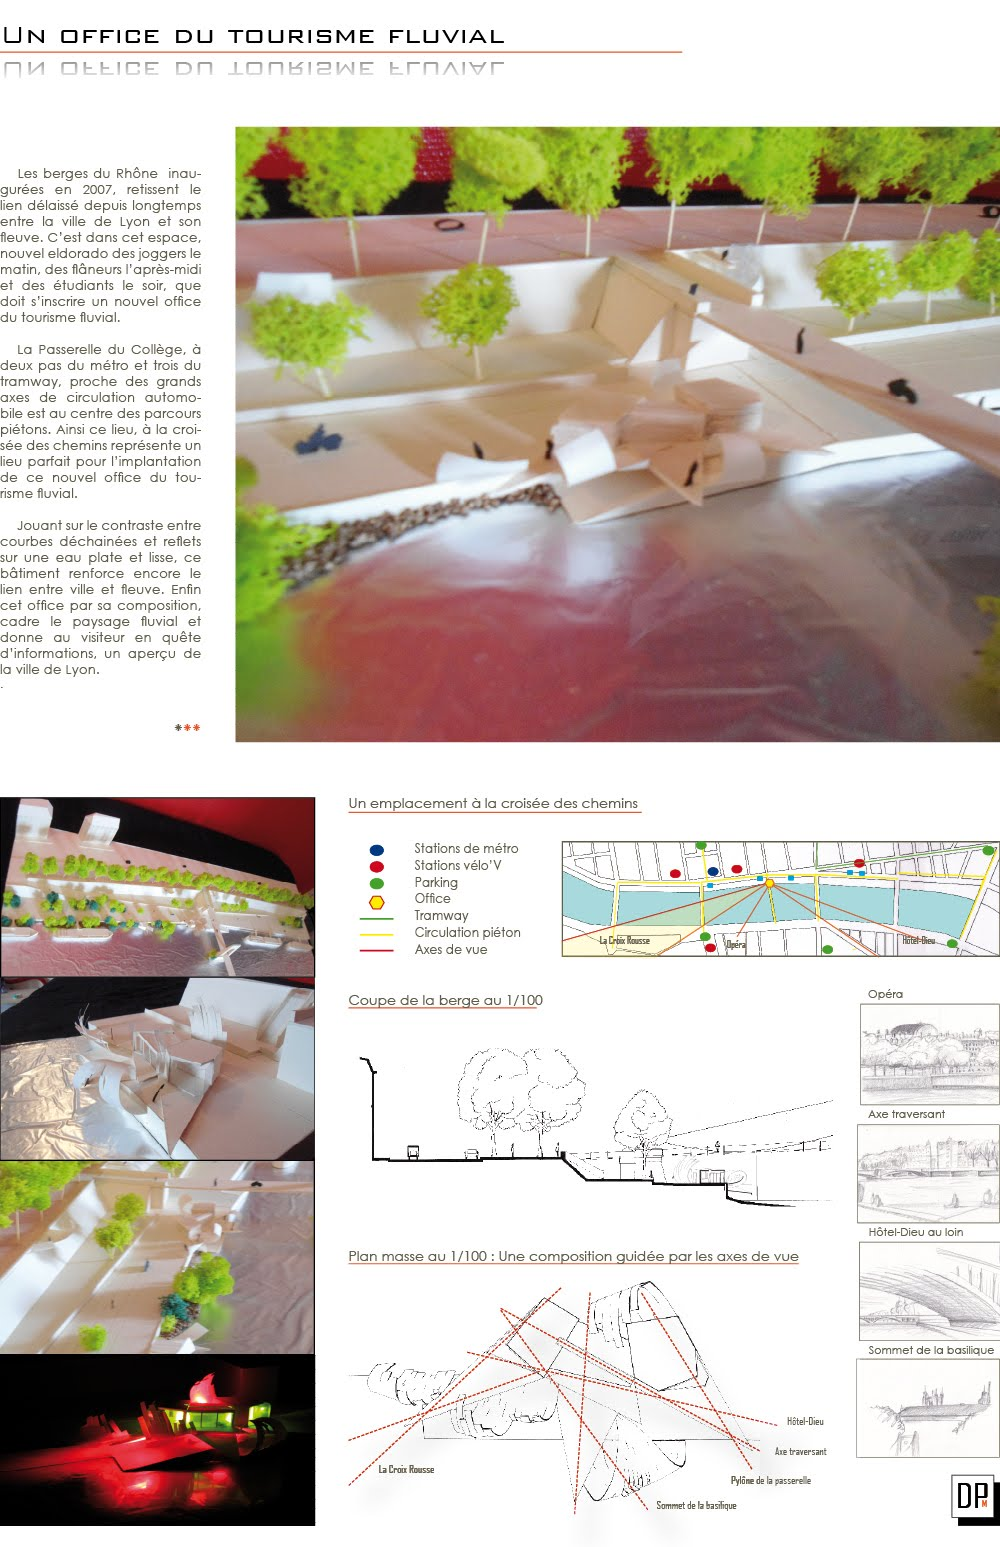 Office du tourisme fluvial denis petit m architecture work - Orcieres merlette office du tourisme ...